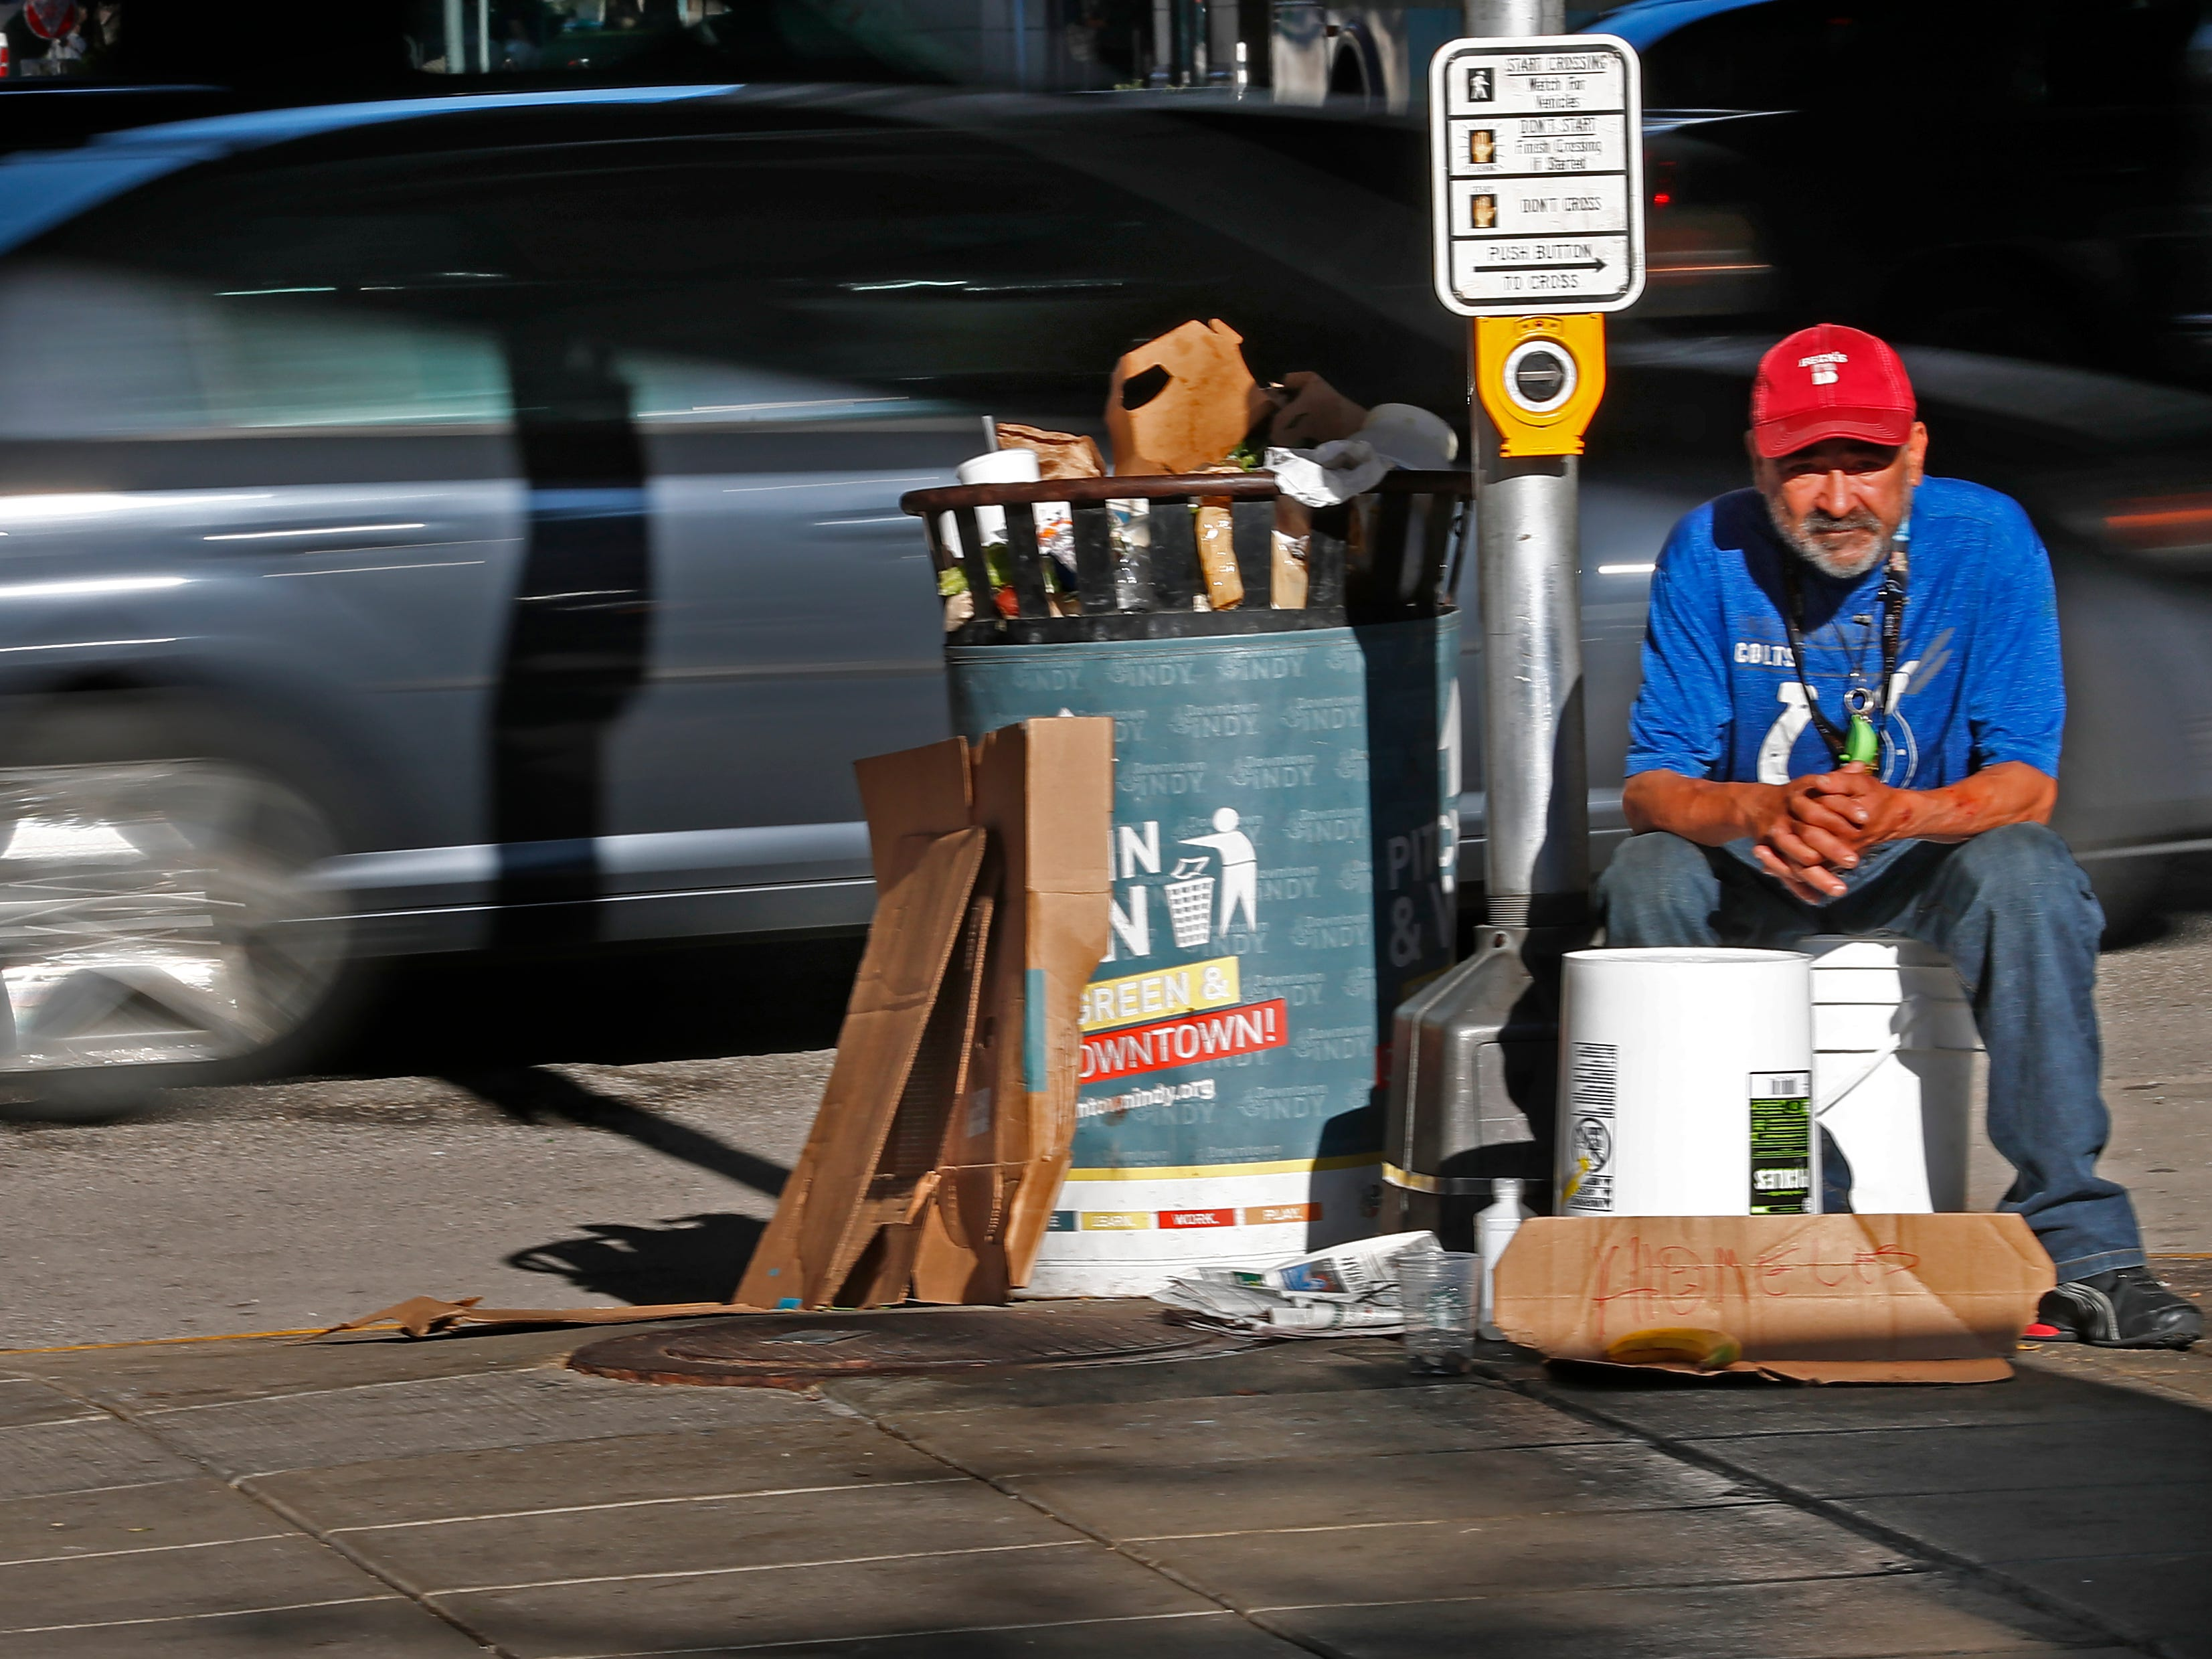 As cars speed by on Illinois St., Roberto Green, a homeless man, waits for handouts in downtown Indianapolis, Thursday, Aug. 9, 2018.  He says he is waiting for disability.  Coalition for Homelessness Intervention & Prevention (CHIP) and the city of Indianapolis have proposed a plan to end homelessness in the city by 2023.